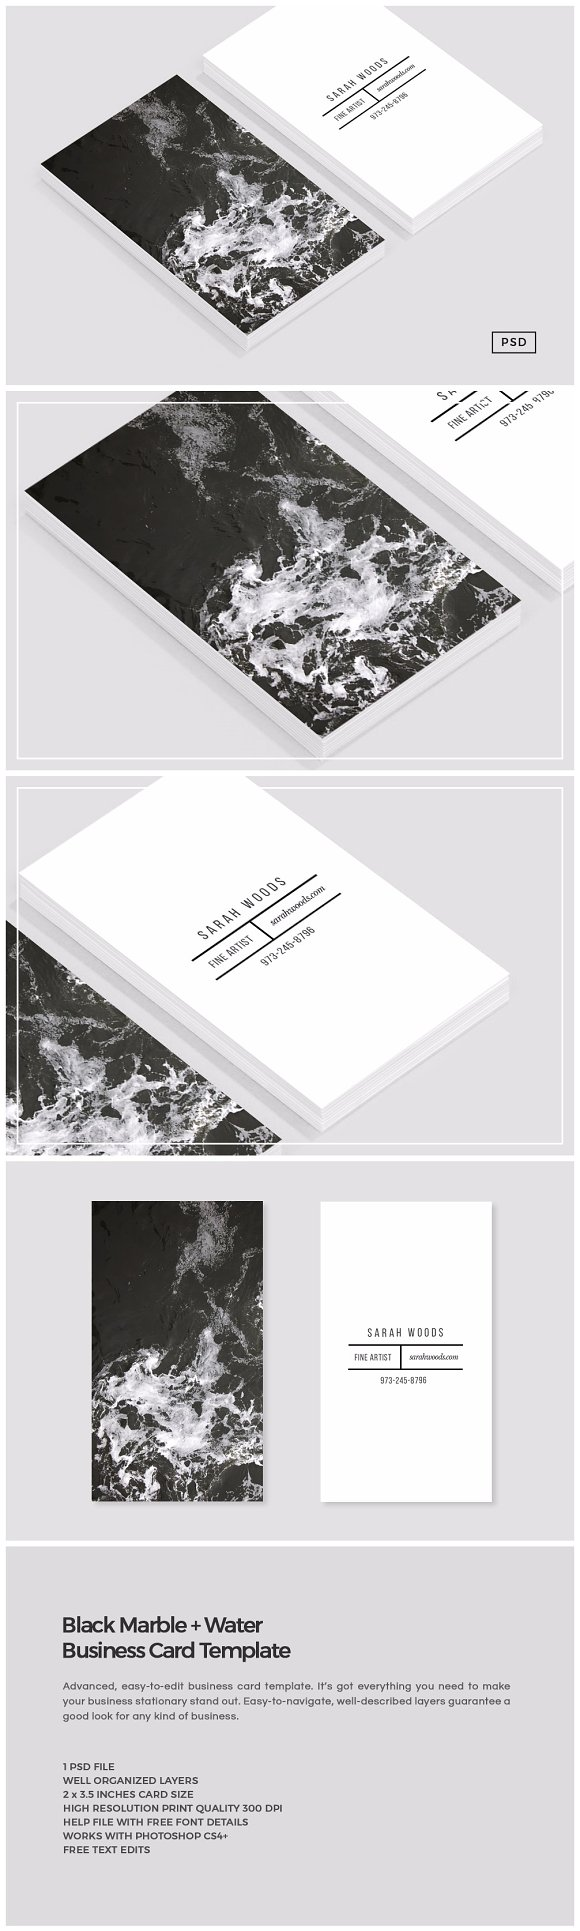 Black Marble Business Card Template ~ Business Card Templates ...